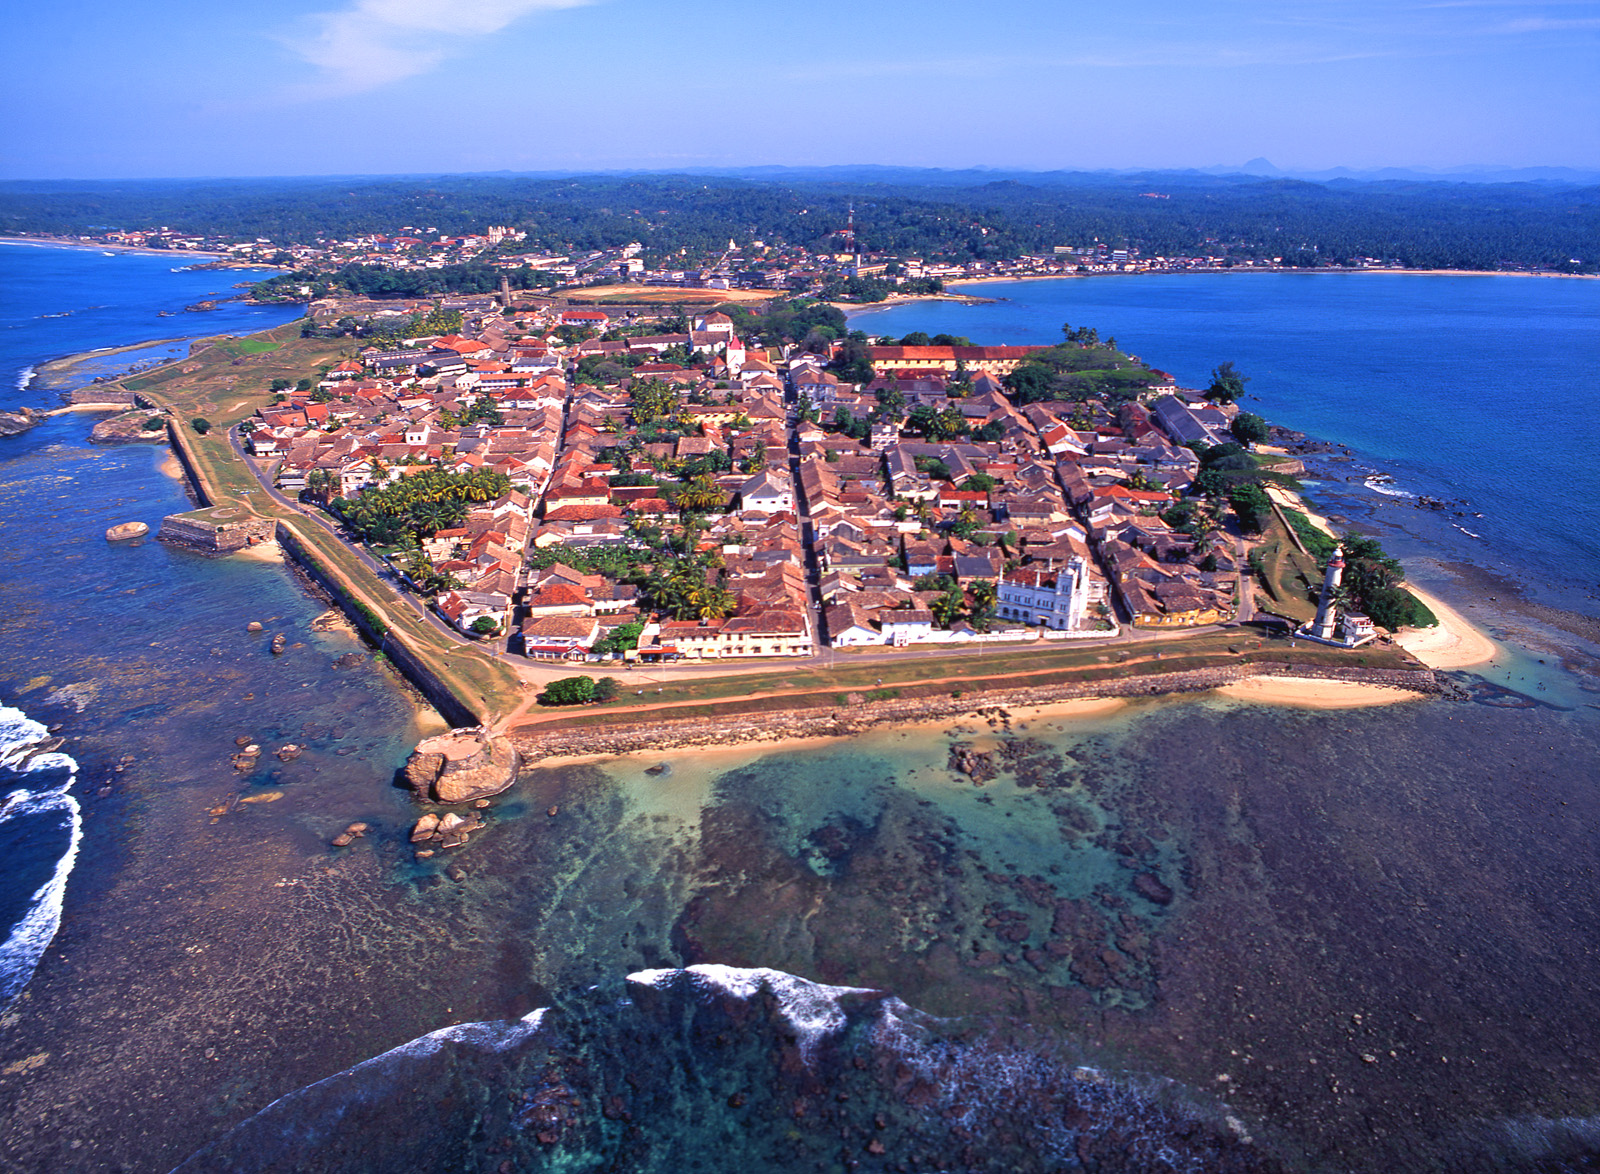 Galle, Sri Lanka: A Walk down the Colonial Old Days